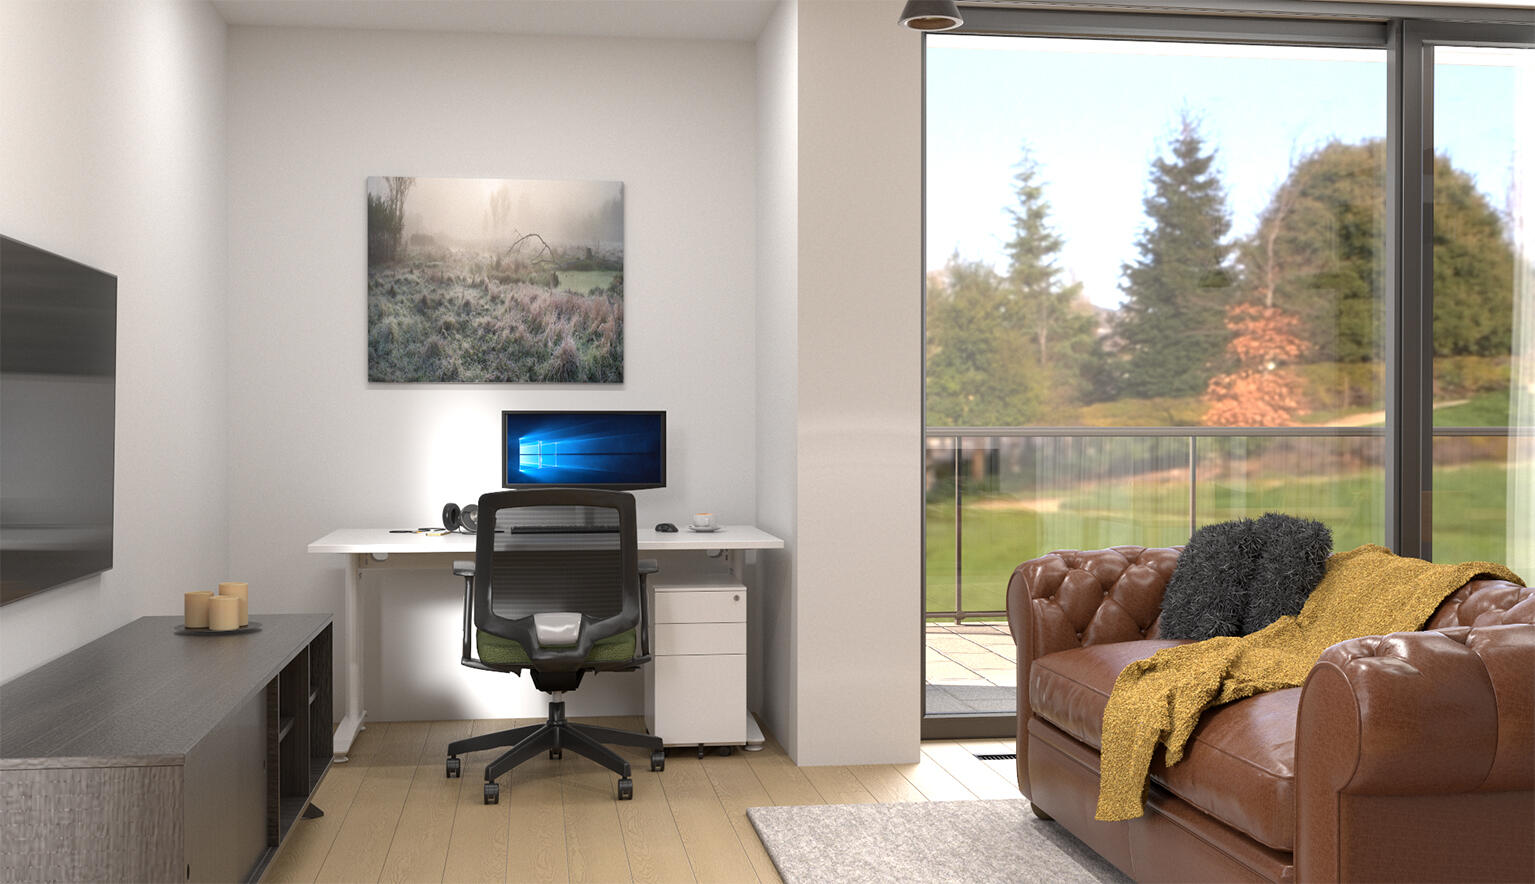 How to Create a Home Office in a Small Space